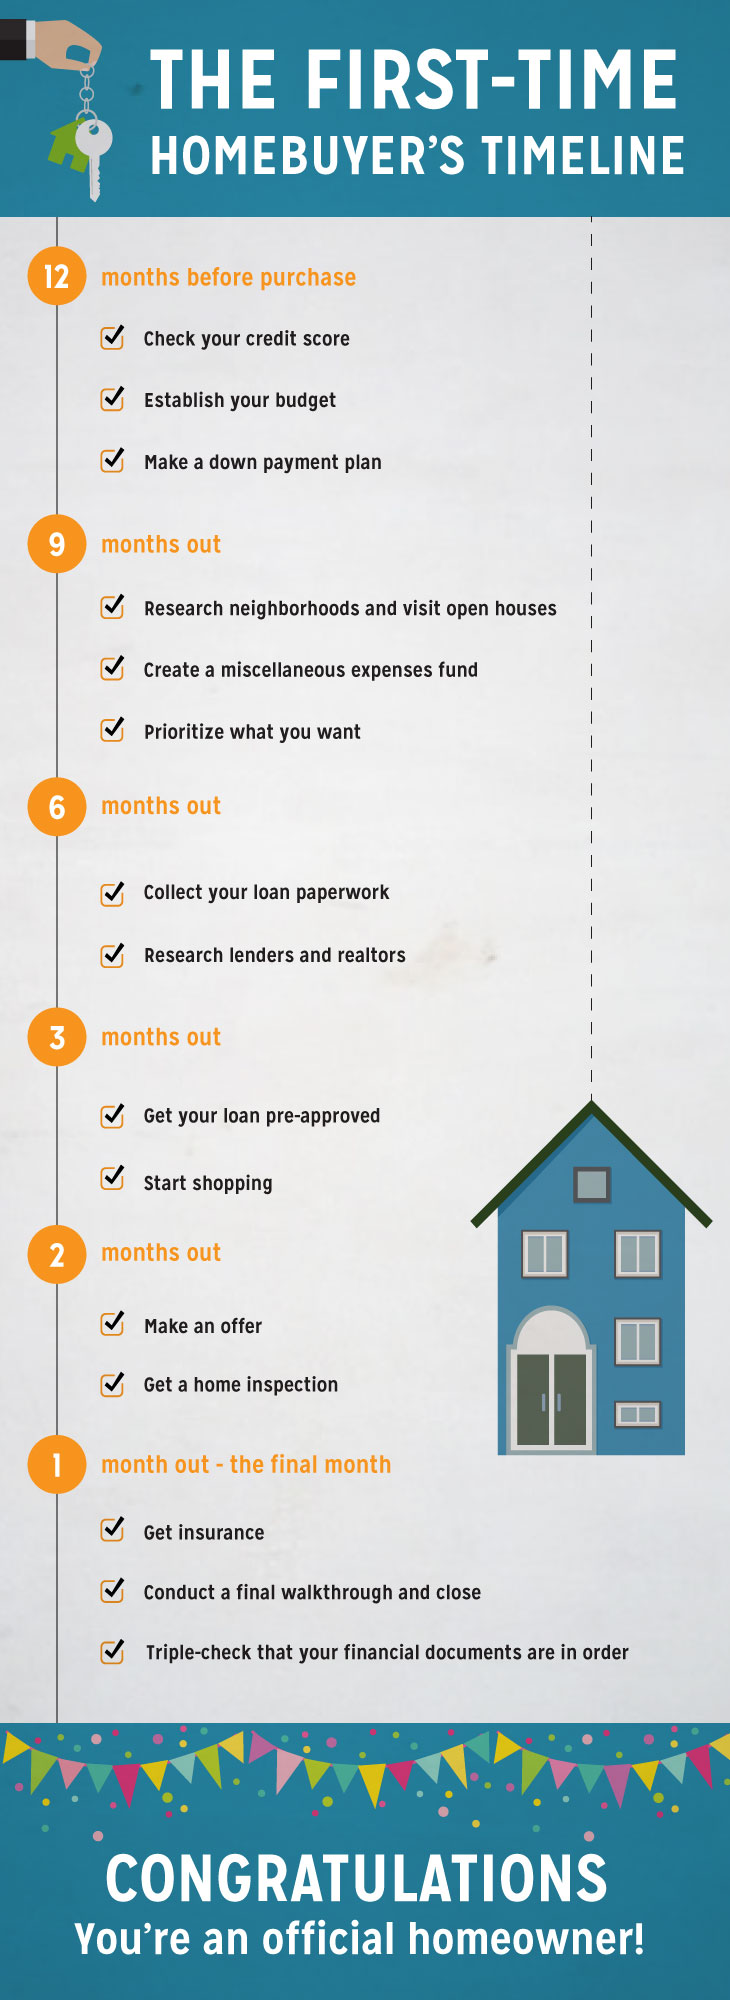 First-time homebuyer timeline